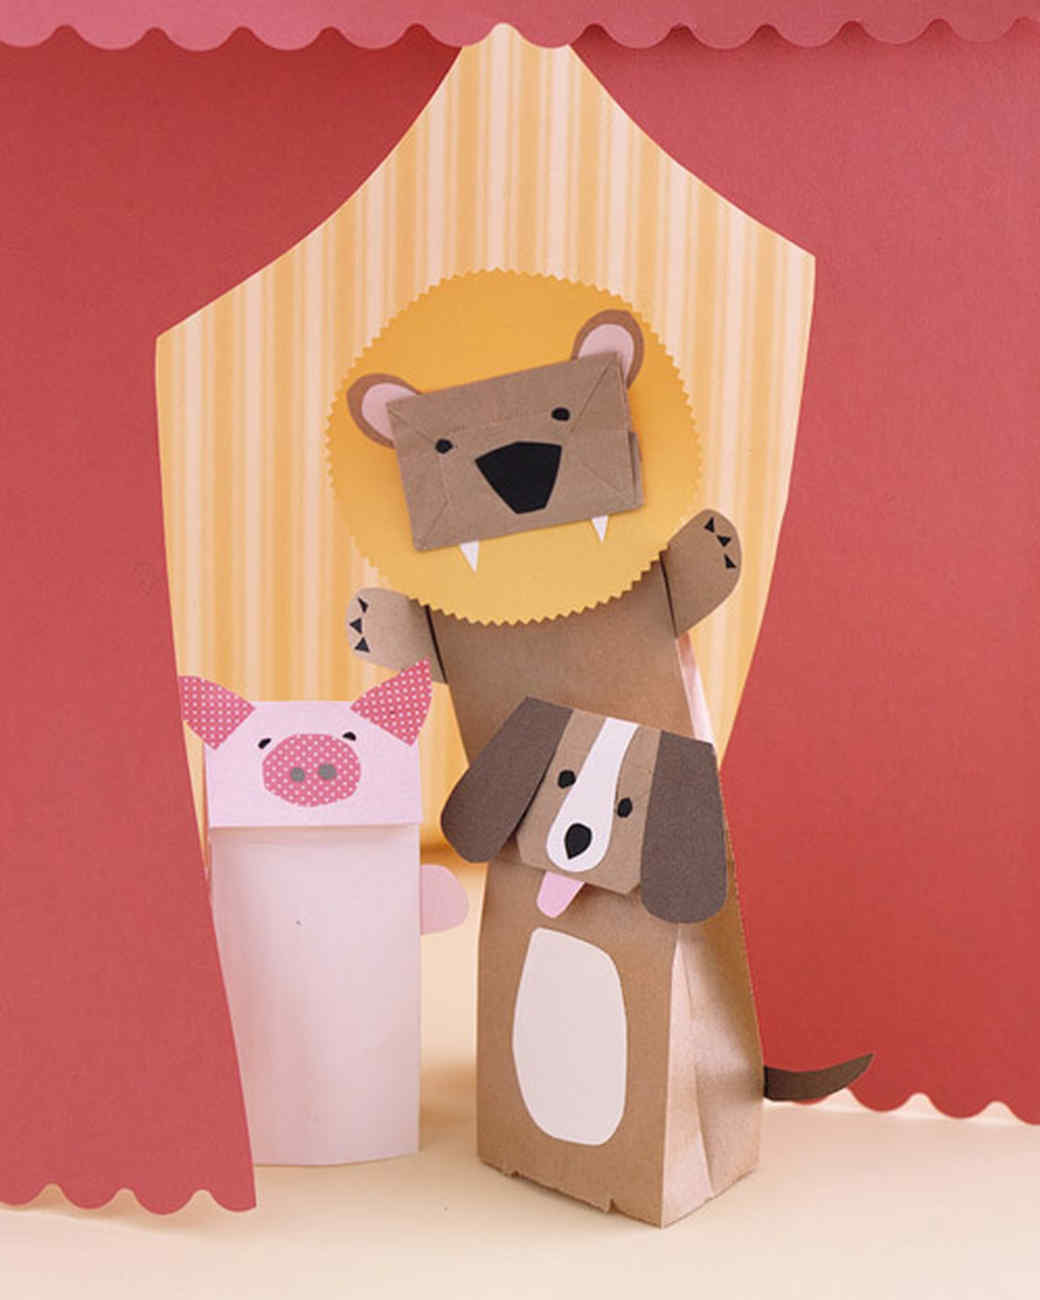 36 paper crafts anyone can make | martha stewart